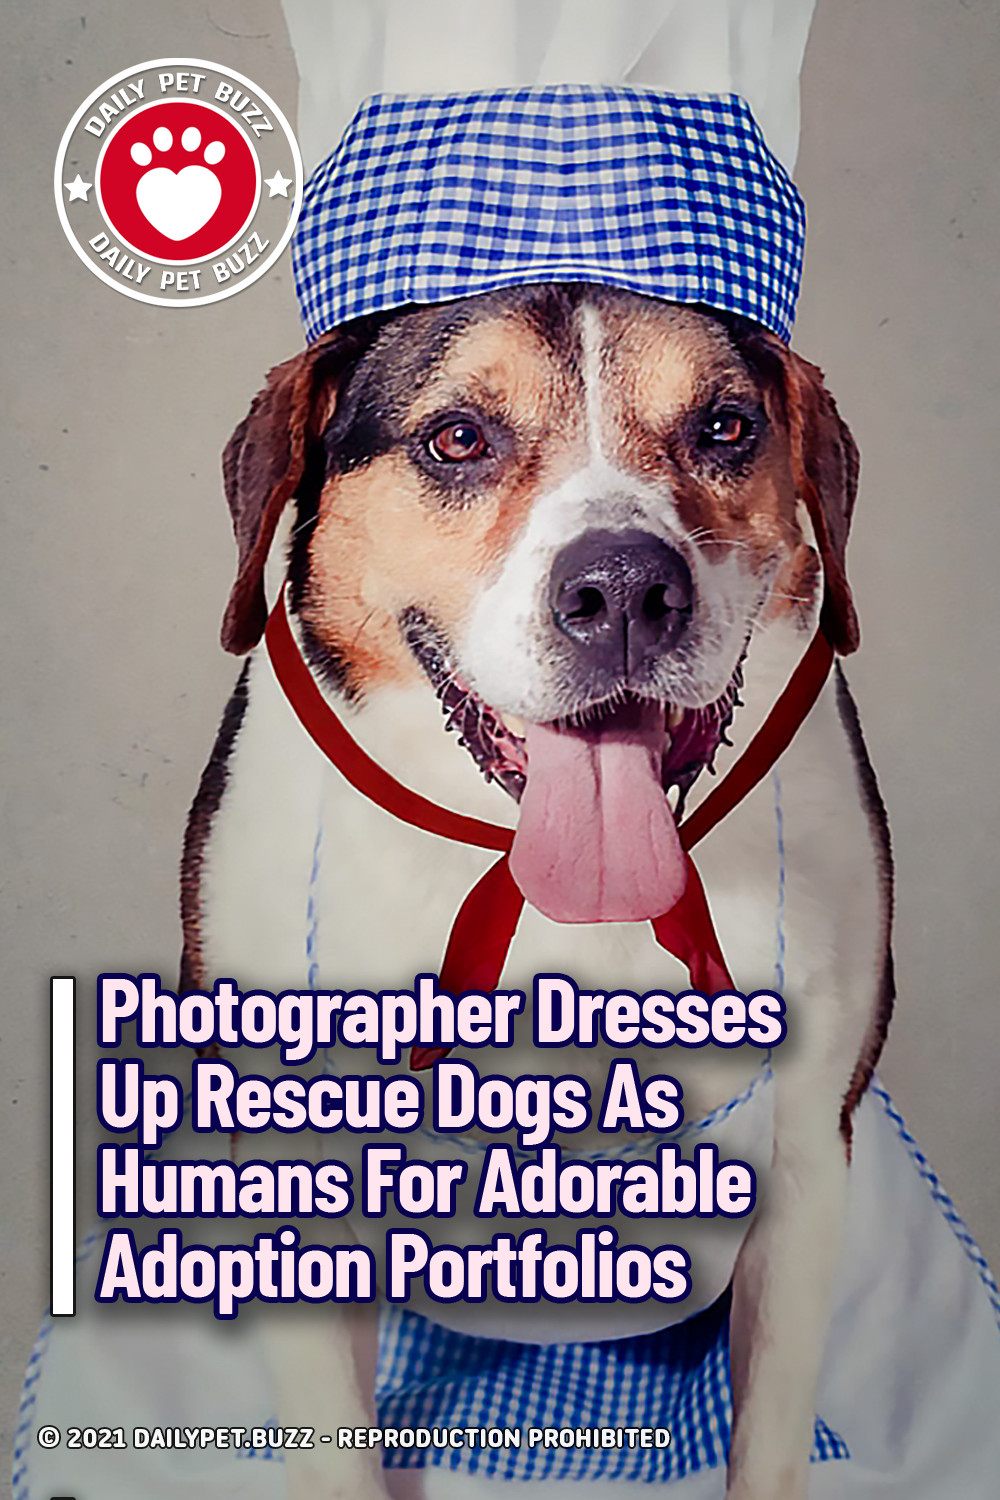 Photographer Dresses Up Rescue Dogs As Humans For Adorable Adoption Portfolios